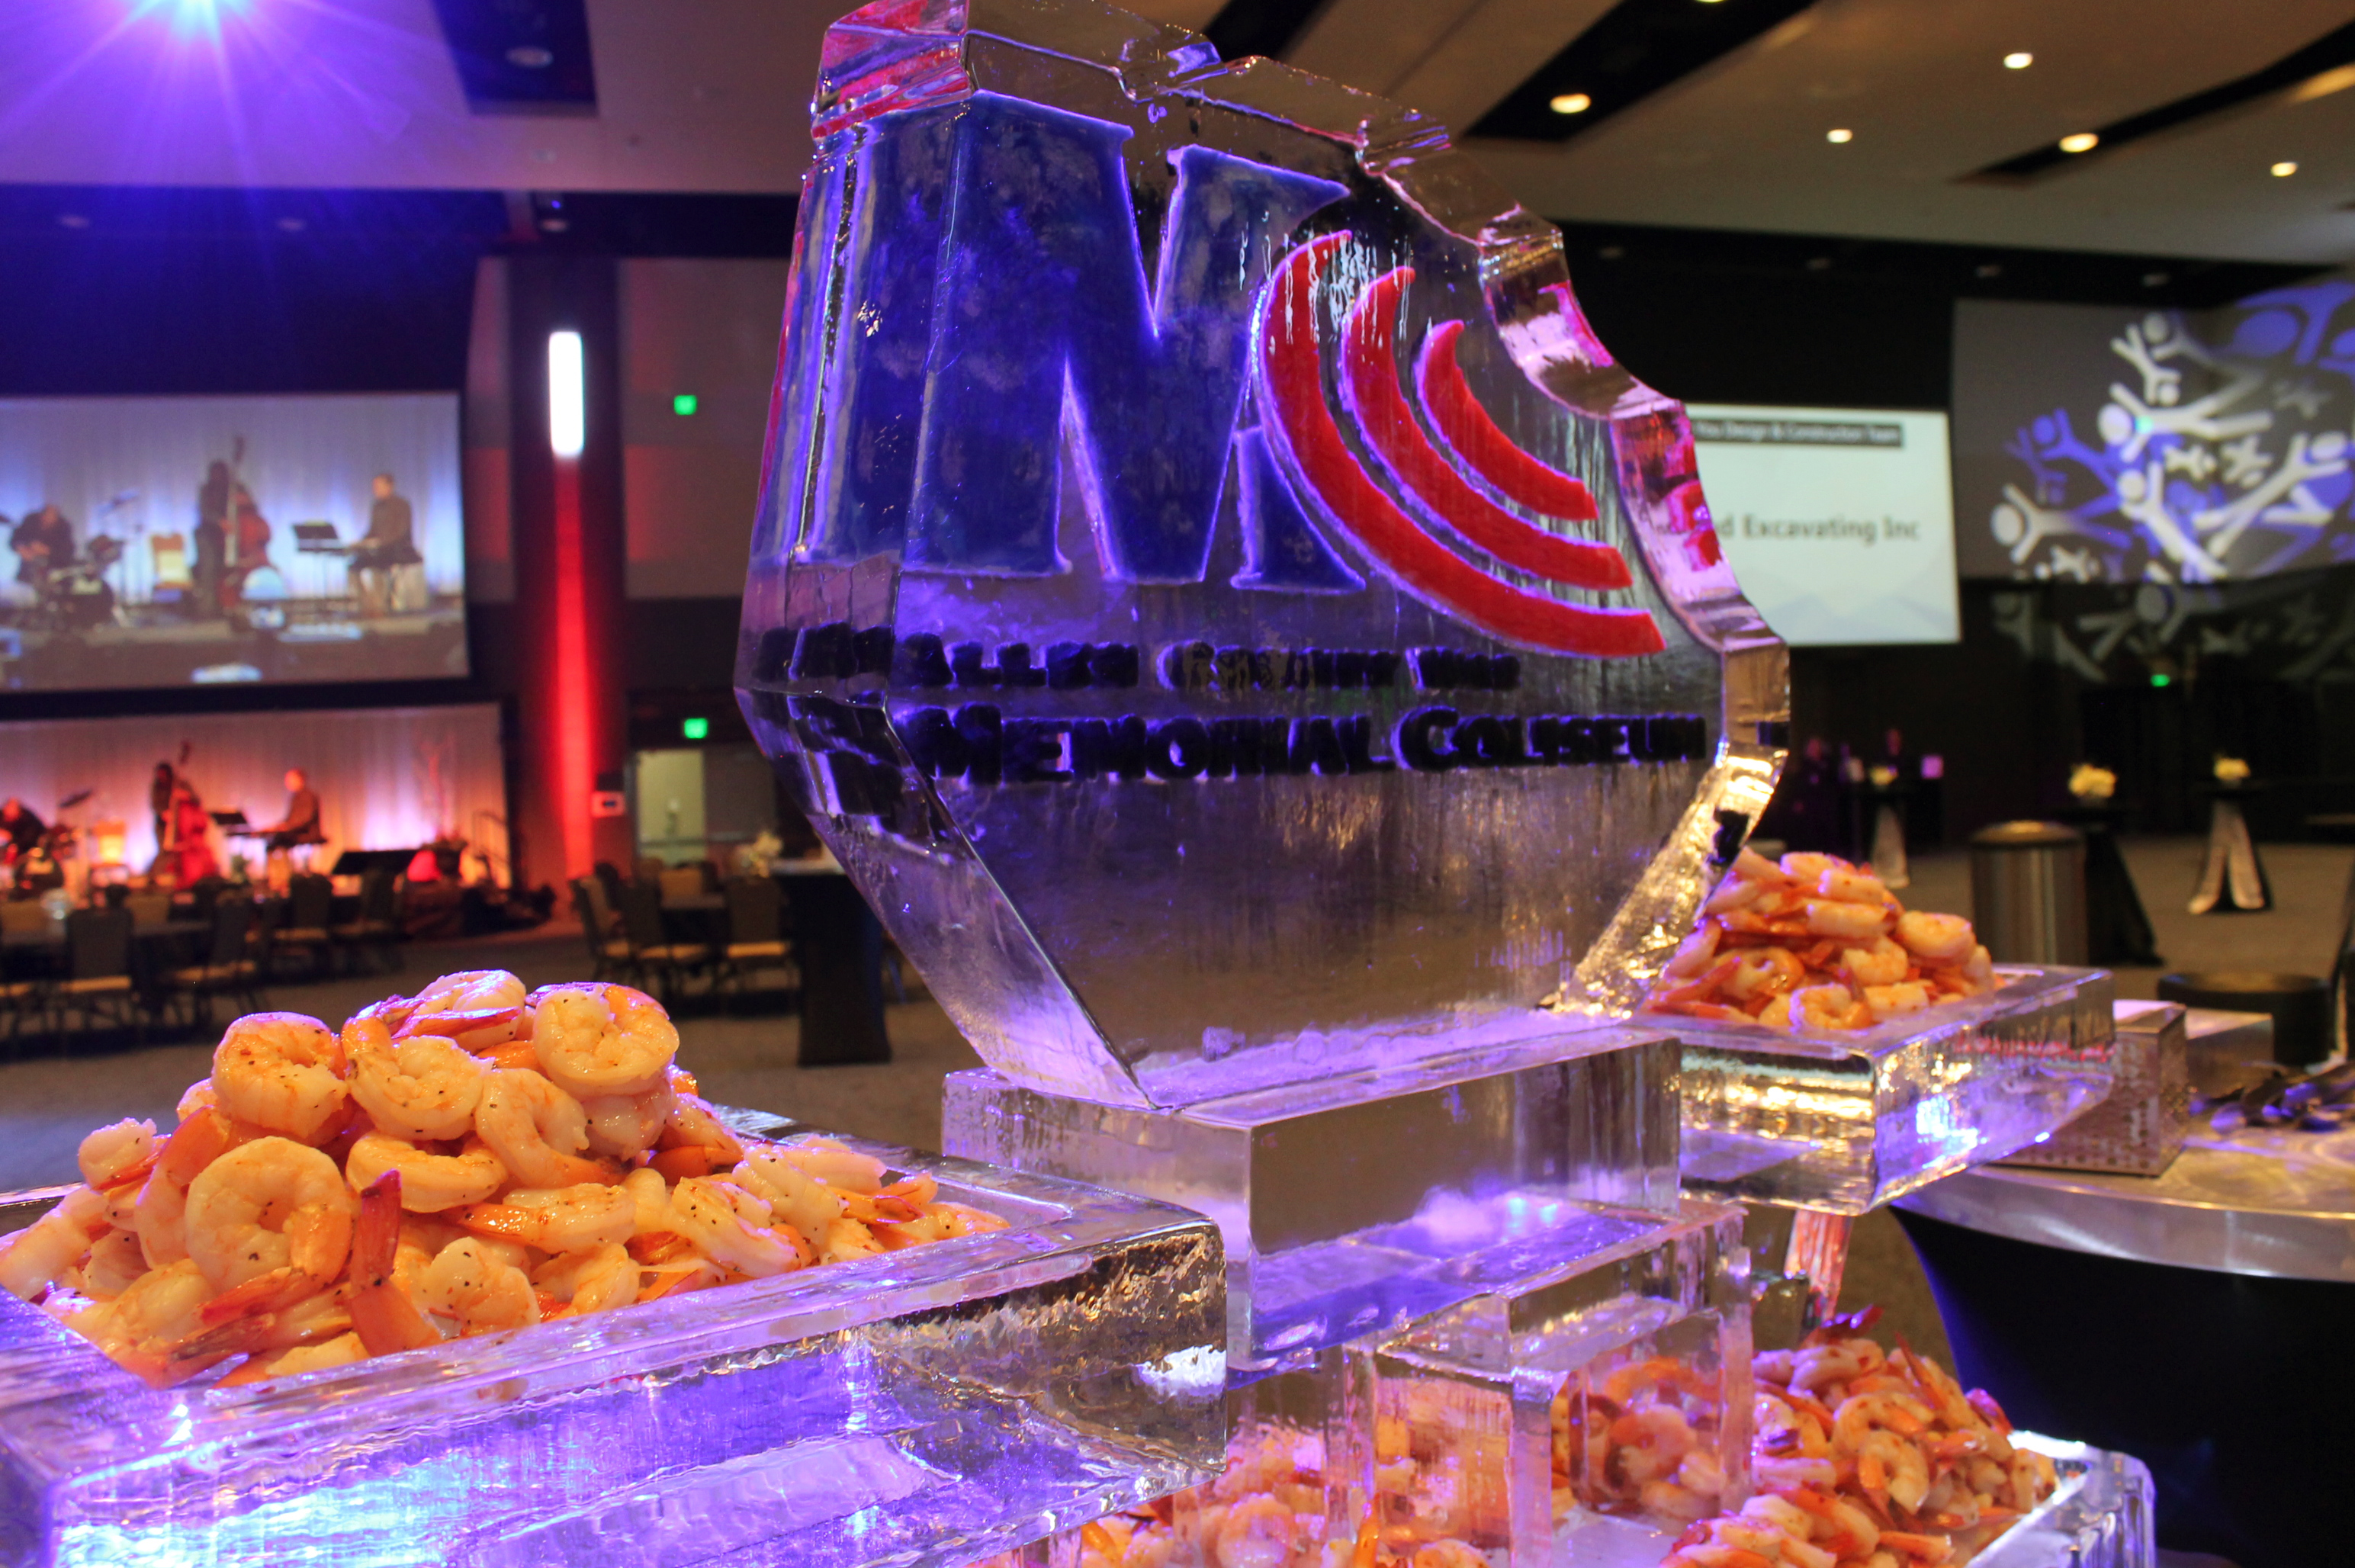 http://memorialcoliseum.com/images/Images/aramarkcatering_gallery/icesculpture.jpg